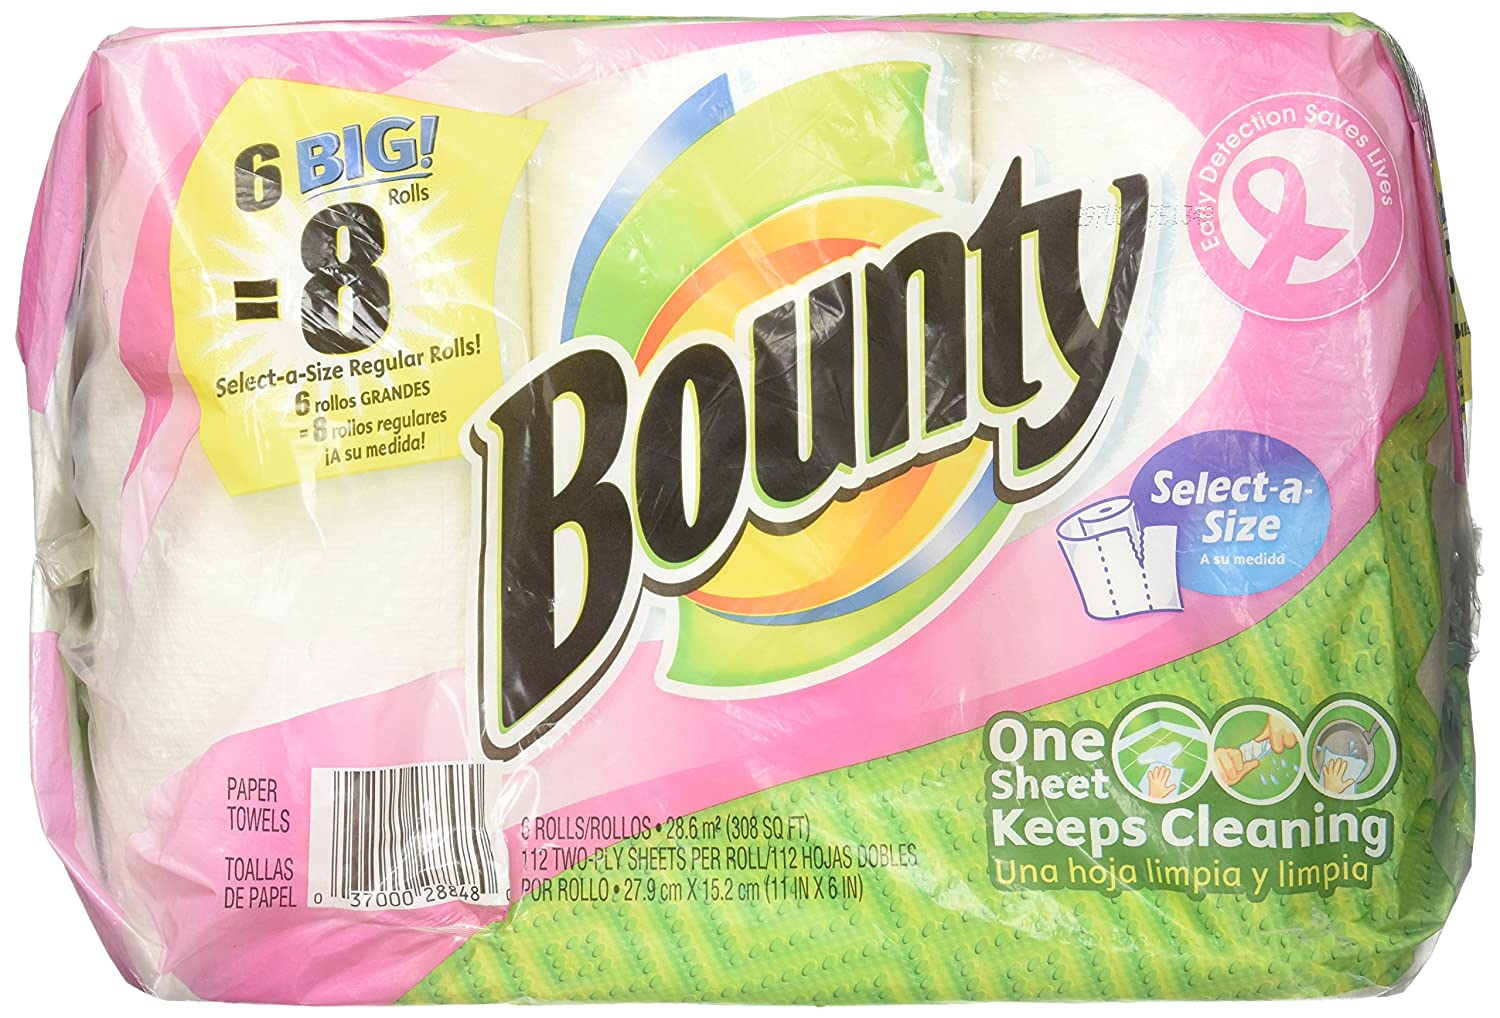 Amazon.com: Bounty Select-a-Size, Big Rolls Paper Towels, White, 6 ea: Health & Personal Care